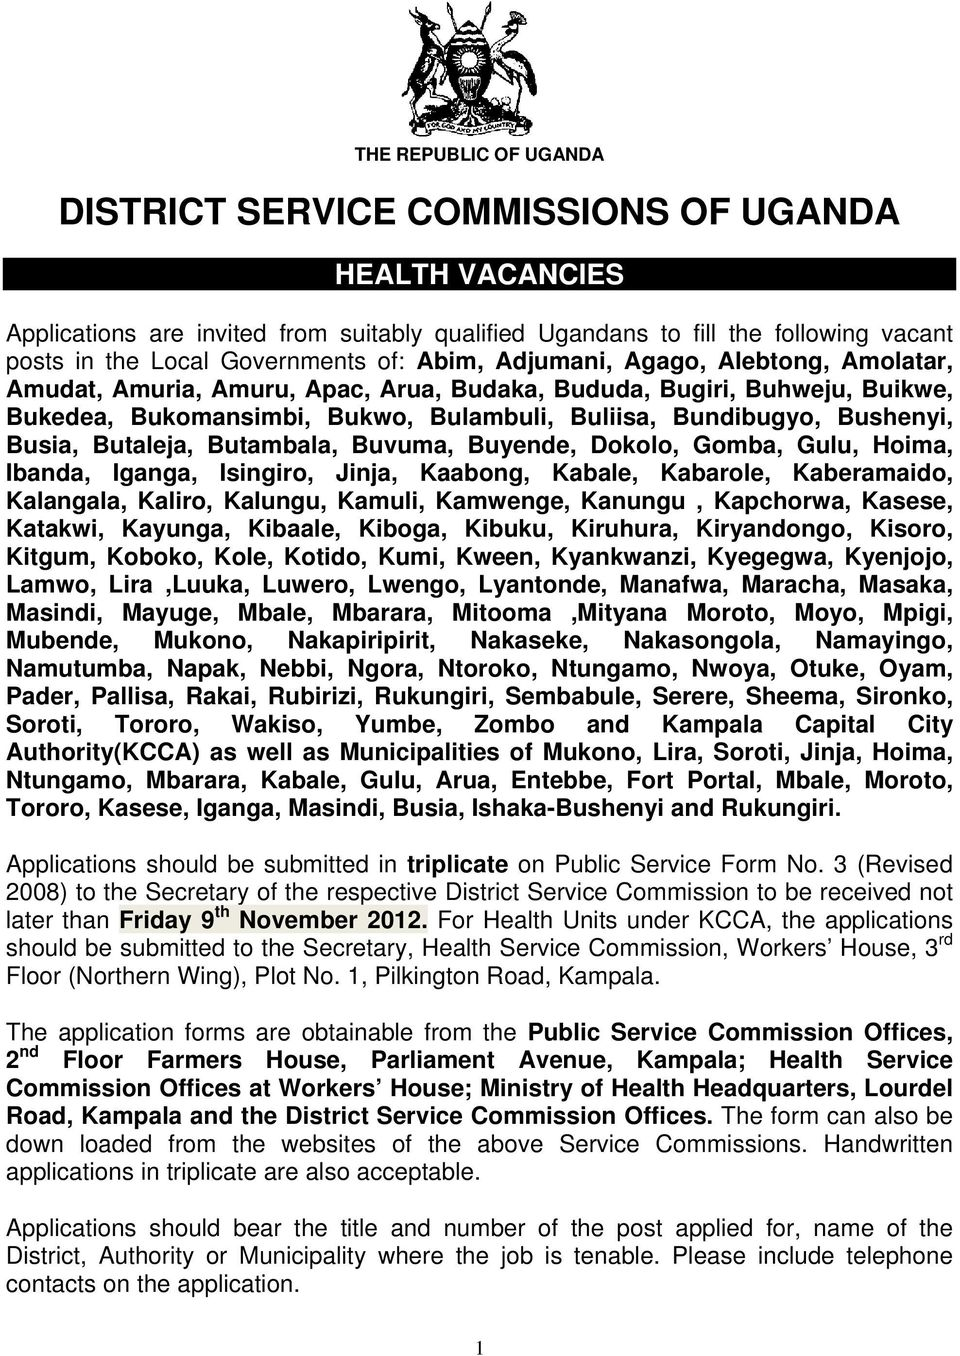 DISTRICT SERVICE COMMISSIONS OF UGANDA - PDF